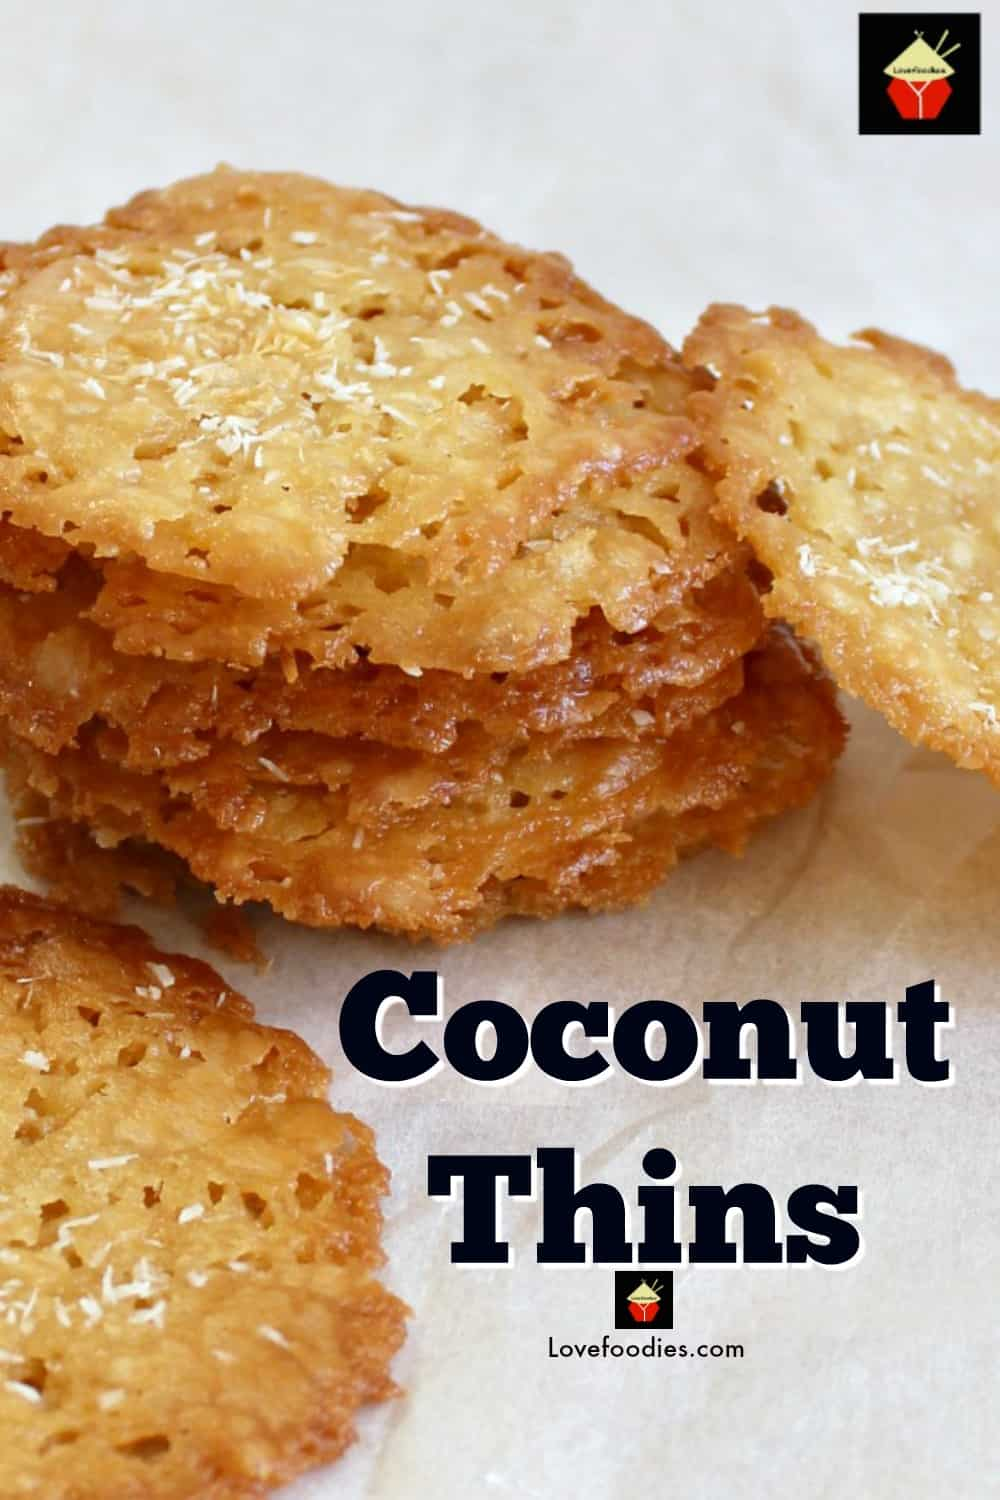 Coconut Thins Lovefoodies